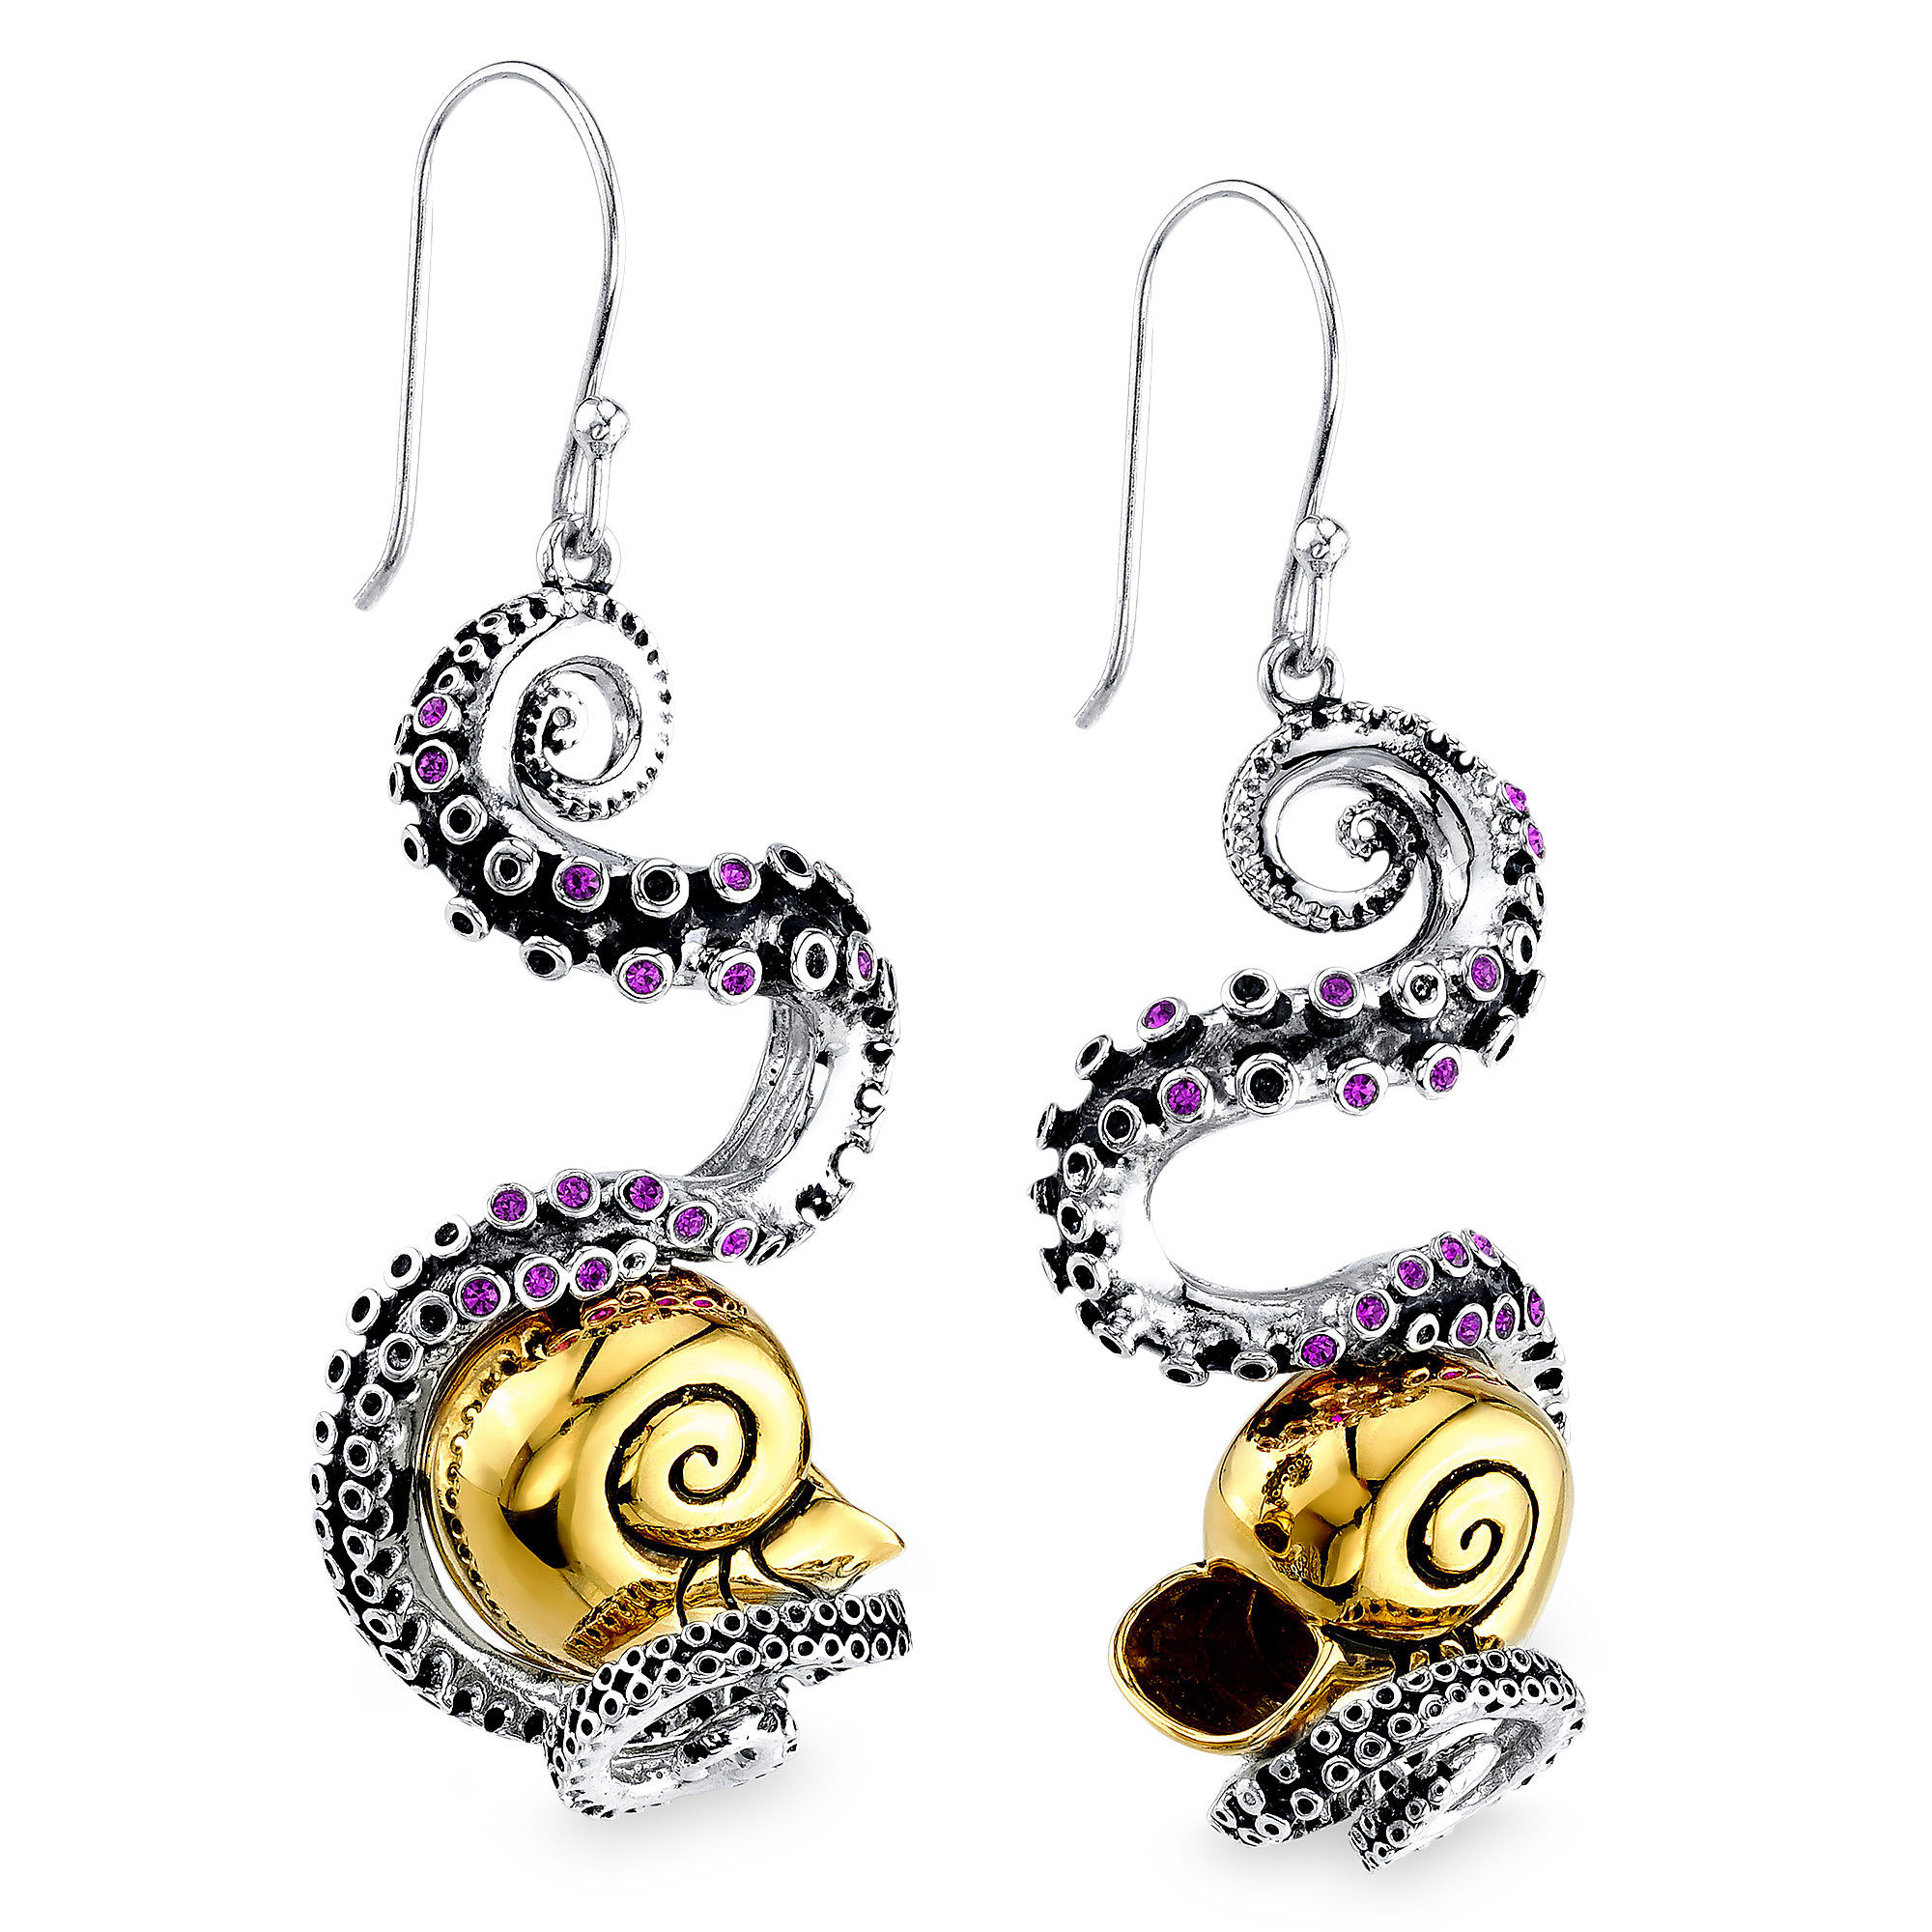 Ursula Tentacle Earrings by RockLove - The Little Mermaid